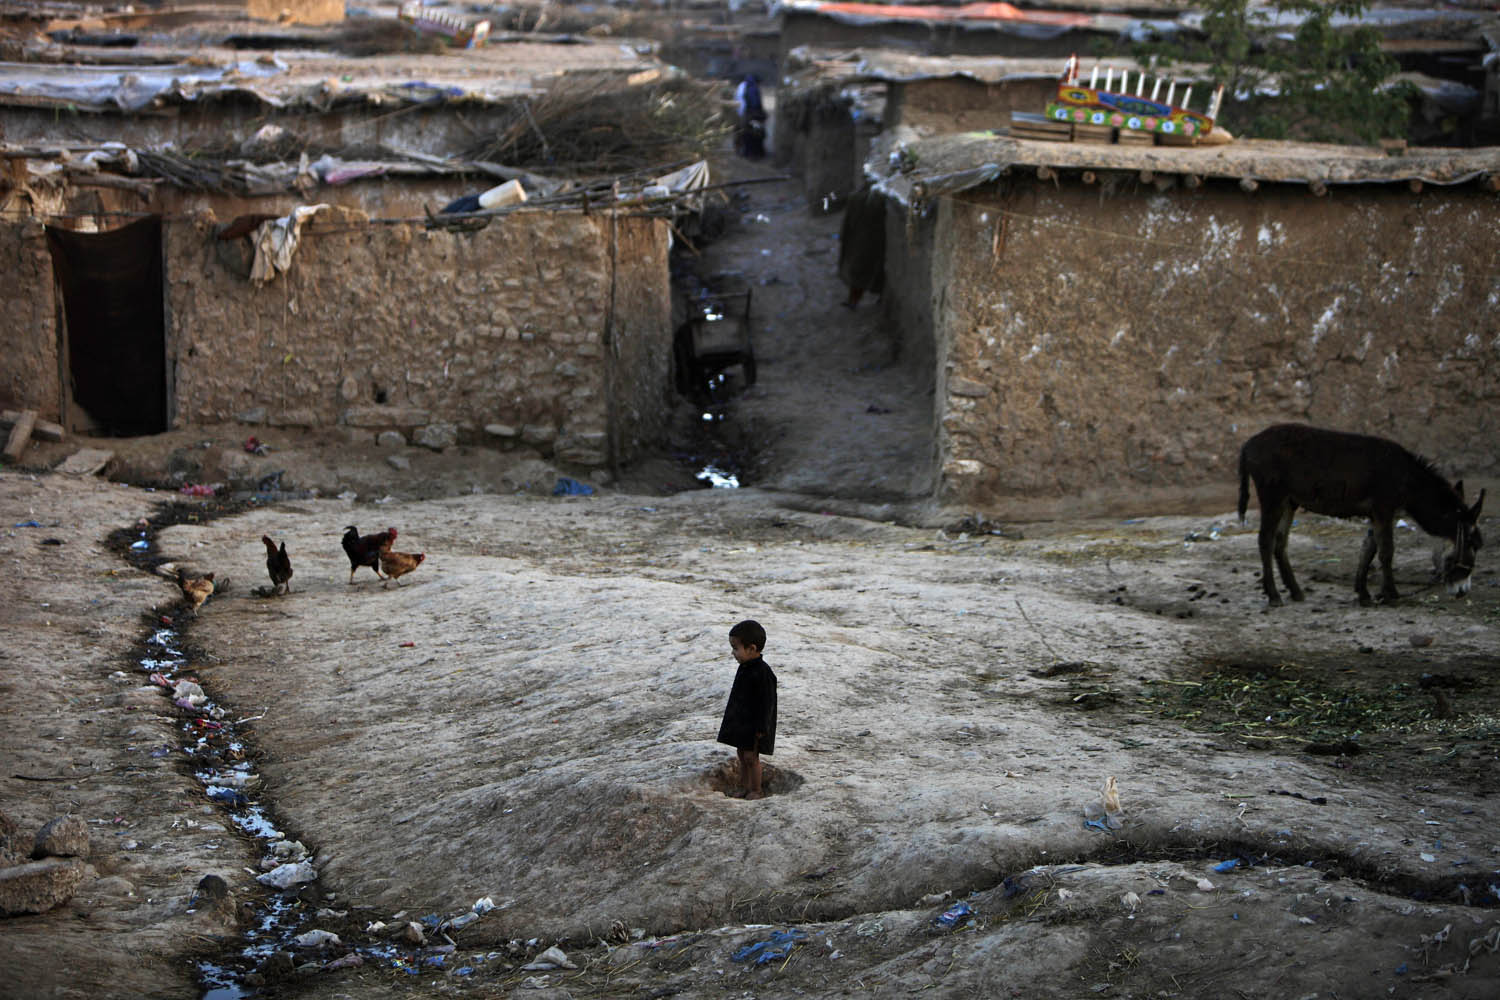 March 21, 2013. An Afghan refugee boy, center, watches chickens feeding in a neighborhood on the outskirts of Islamabad. Pakistan hosts over 1.6 million registered Afghans, the largest and most protracted refugee population in the world, according to the U.N. refugee agency.